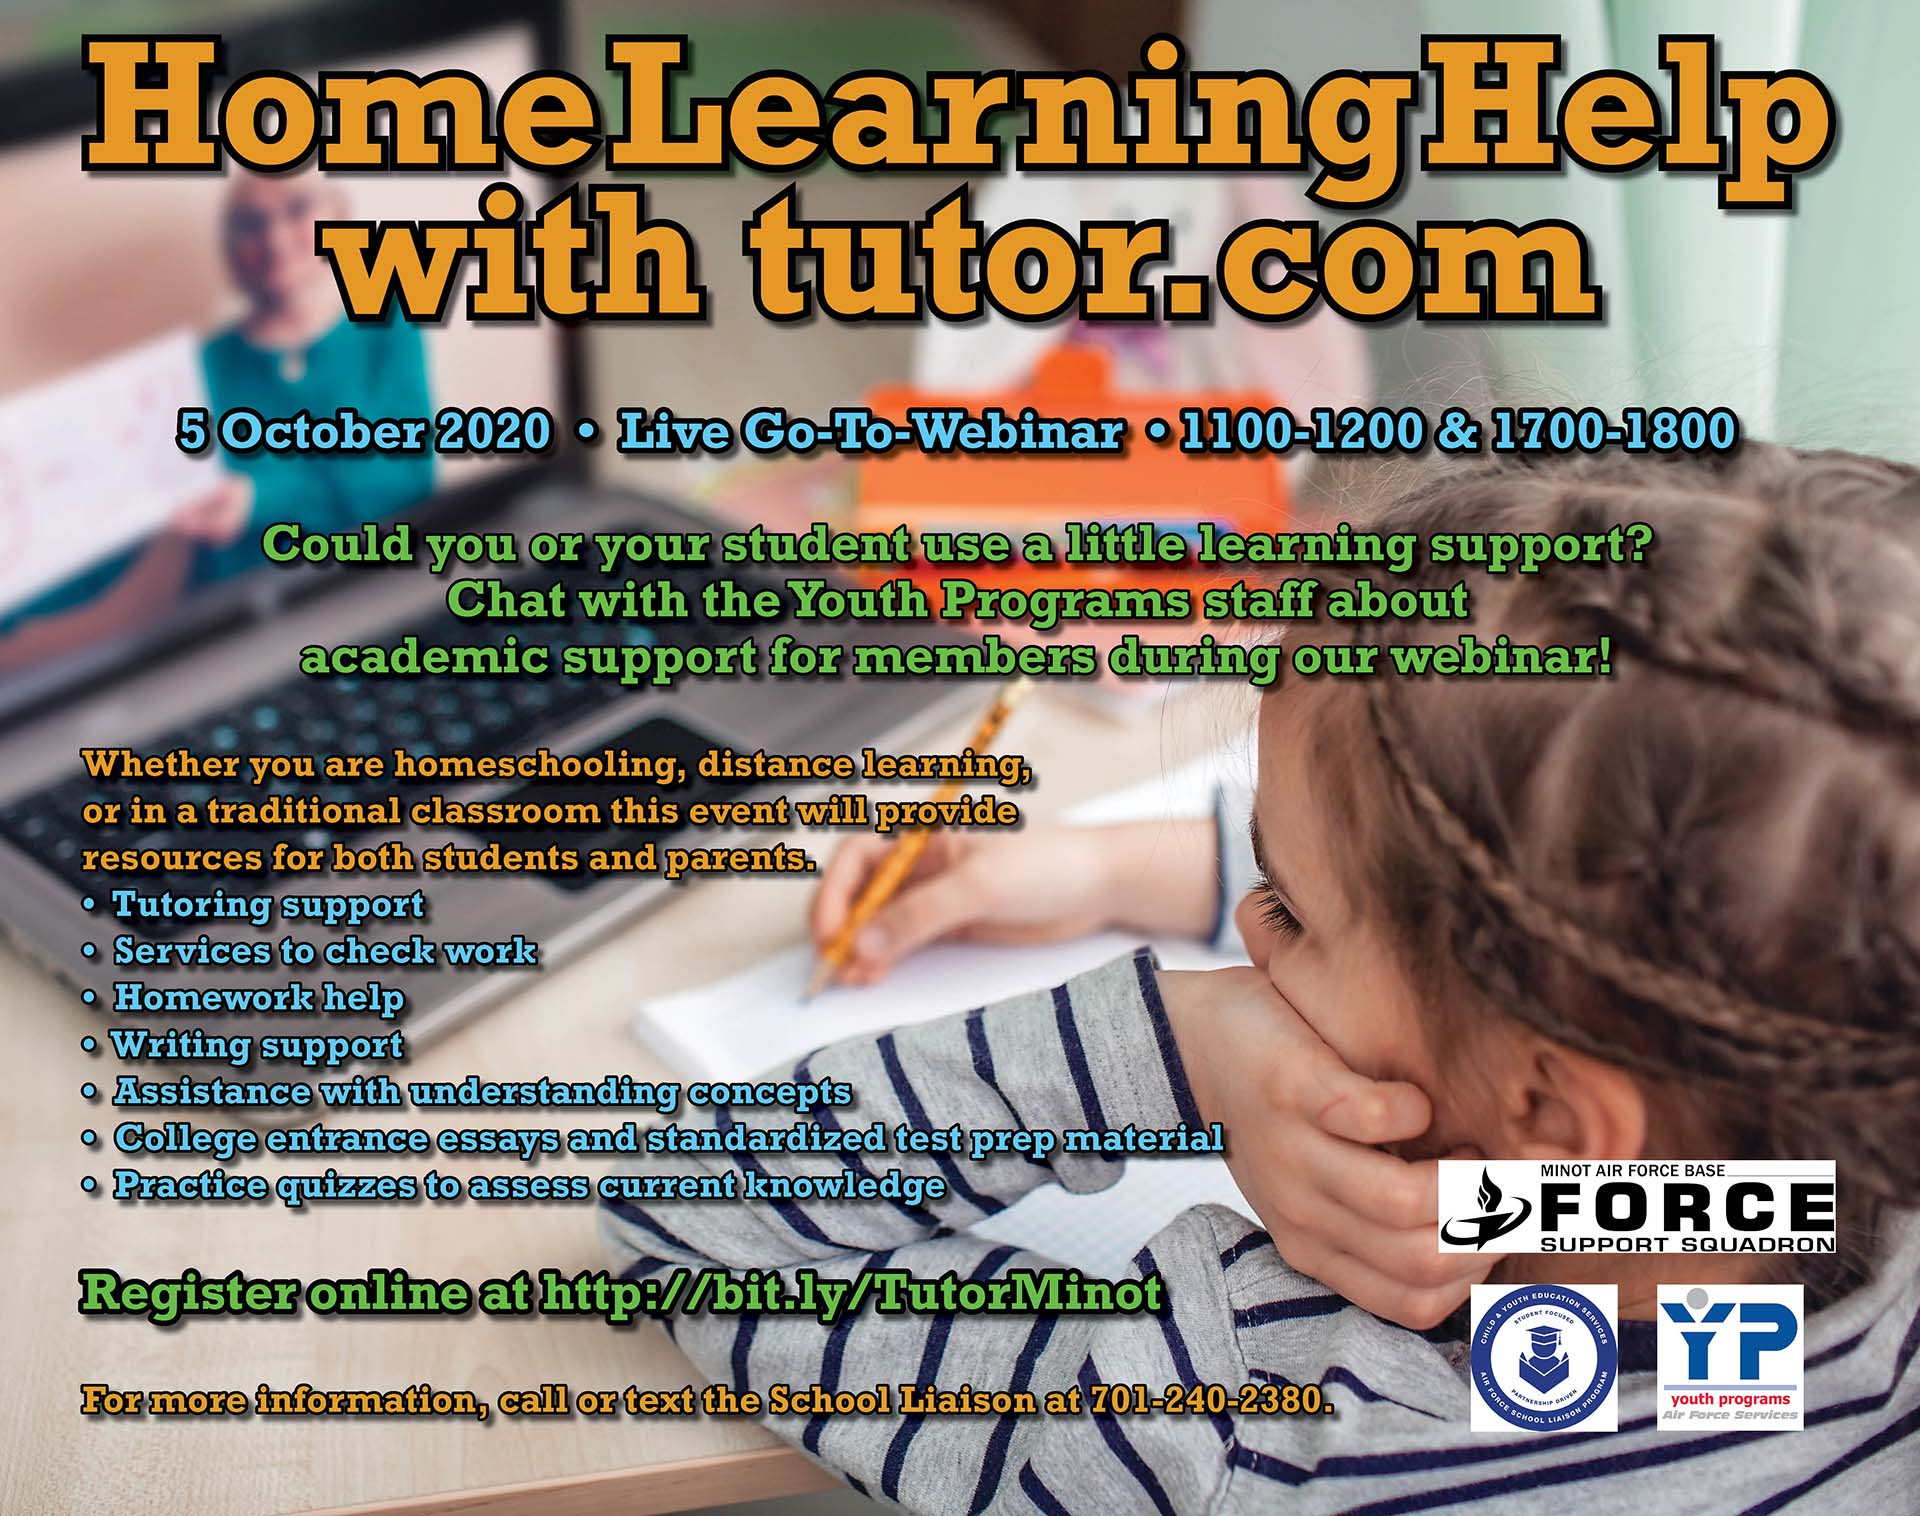 Home Learning Help with tutor.com